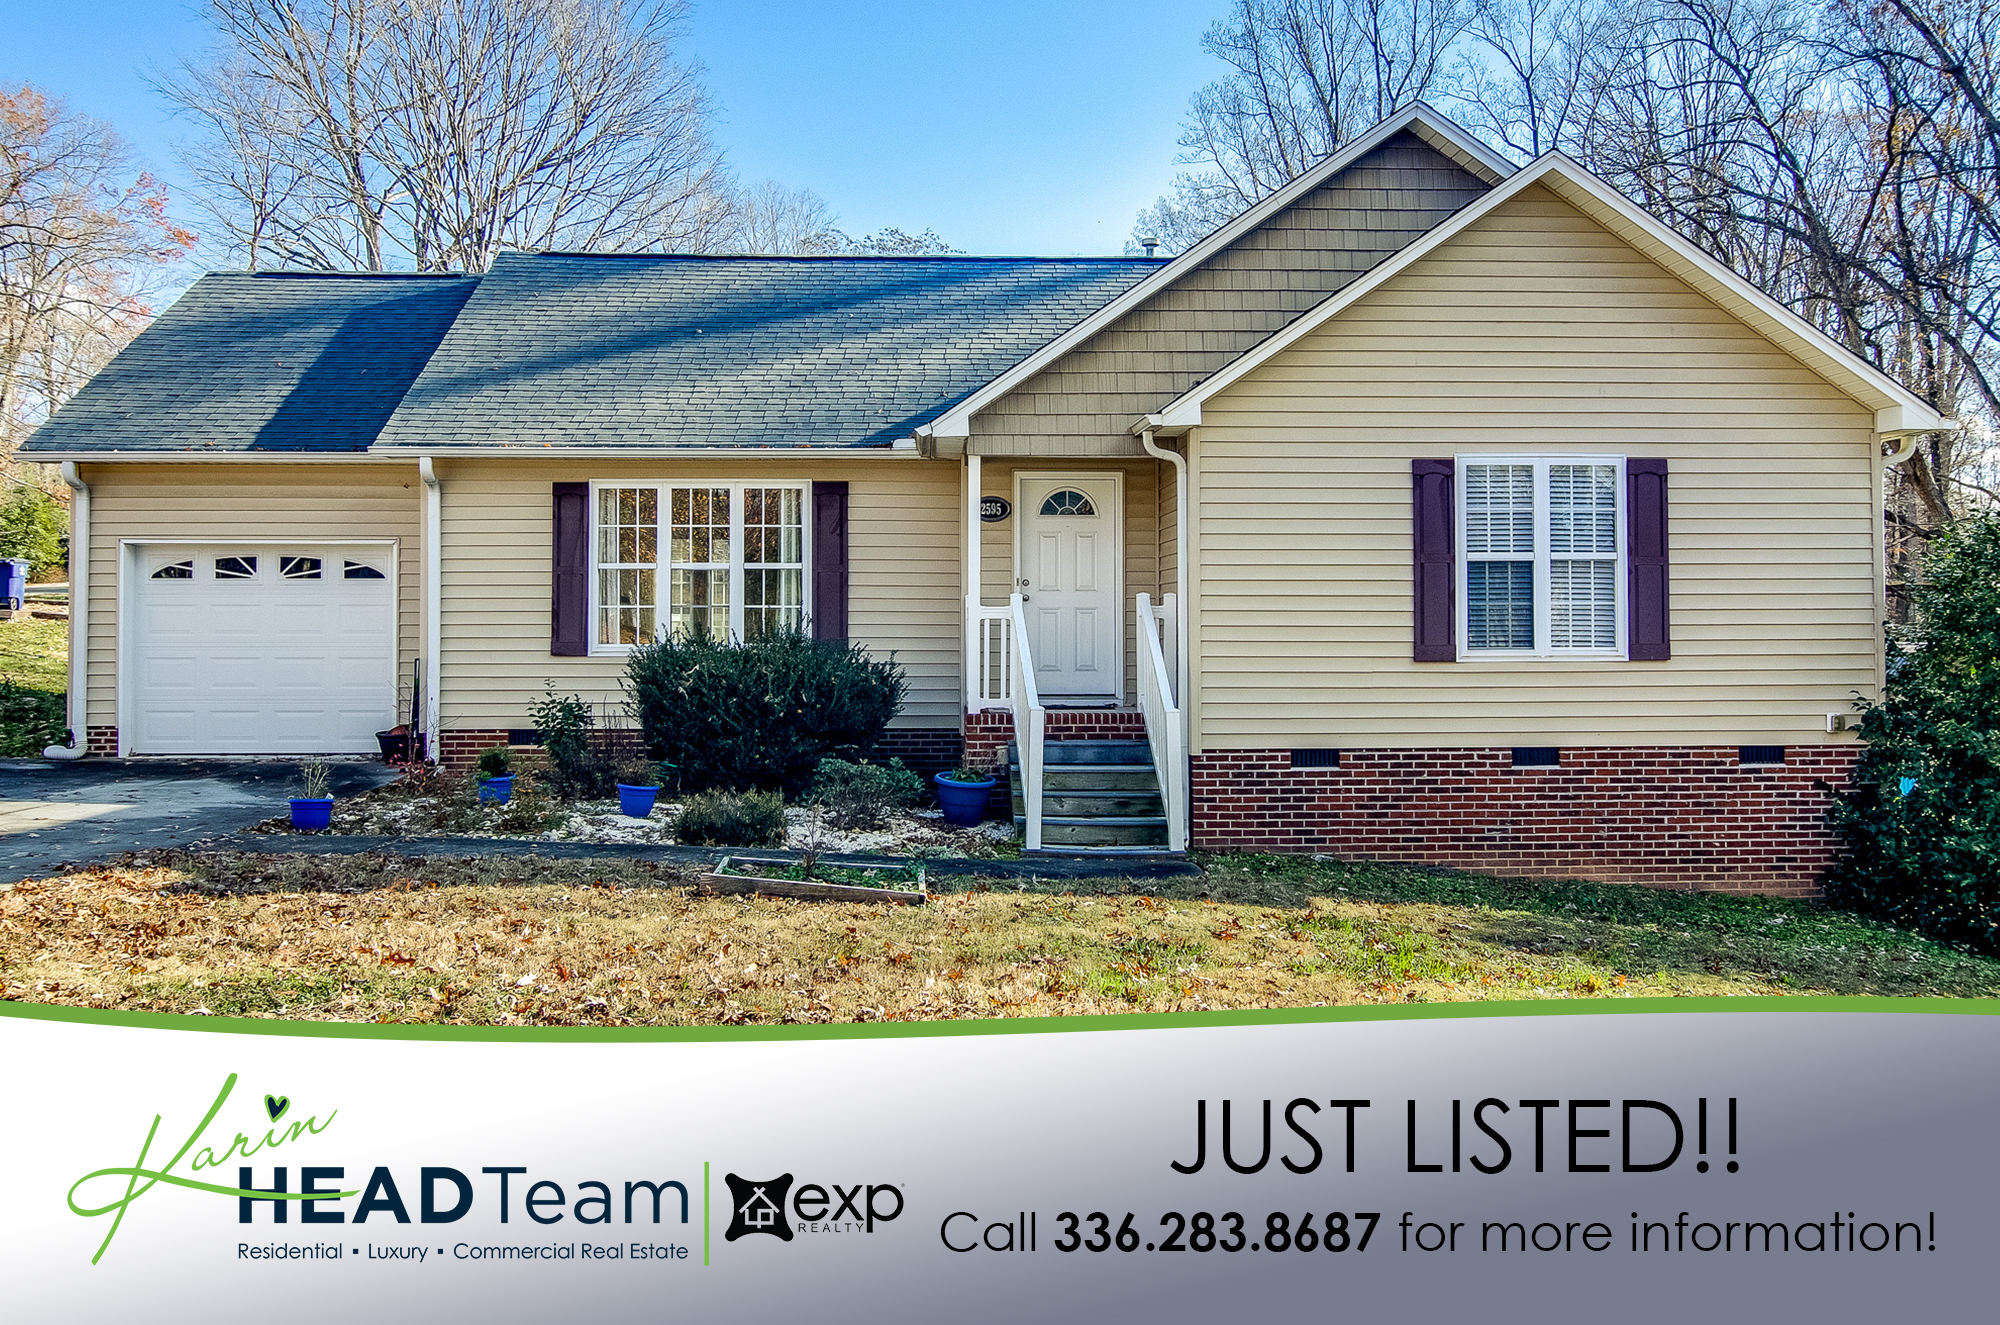 2595 Charton_Just Listed-EXP.jpg